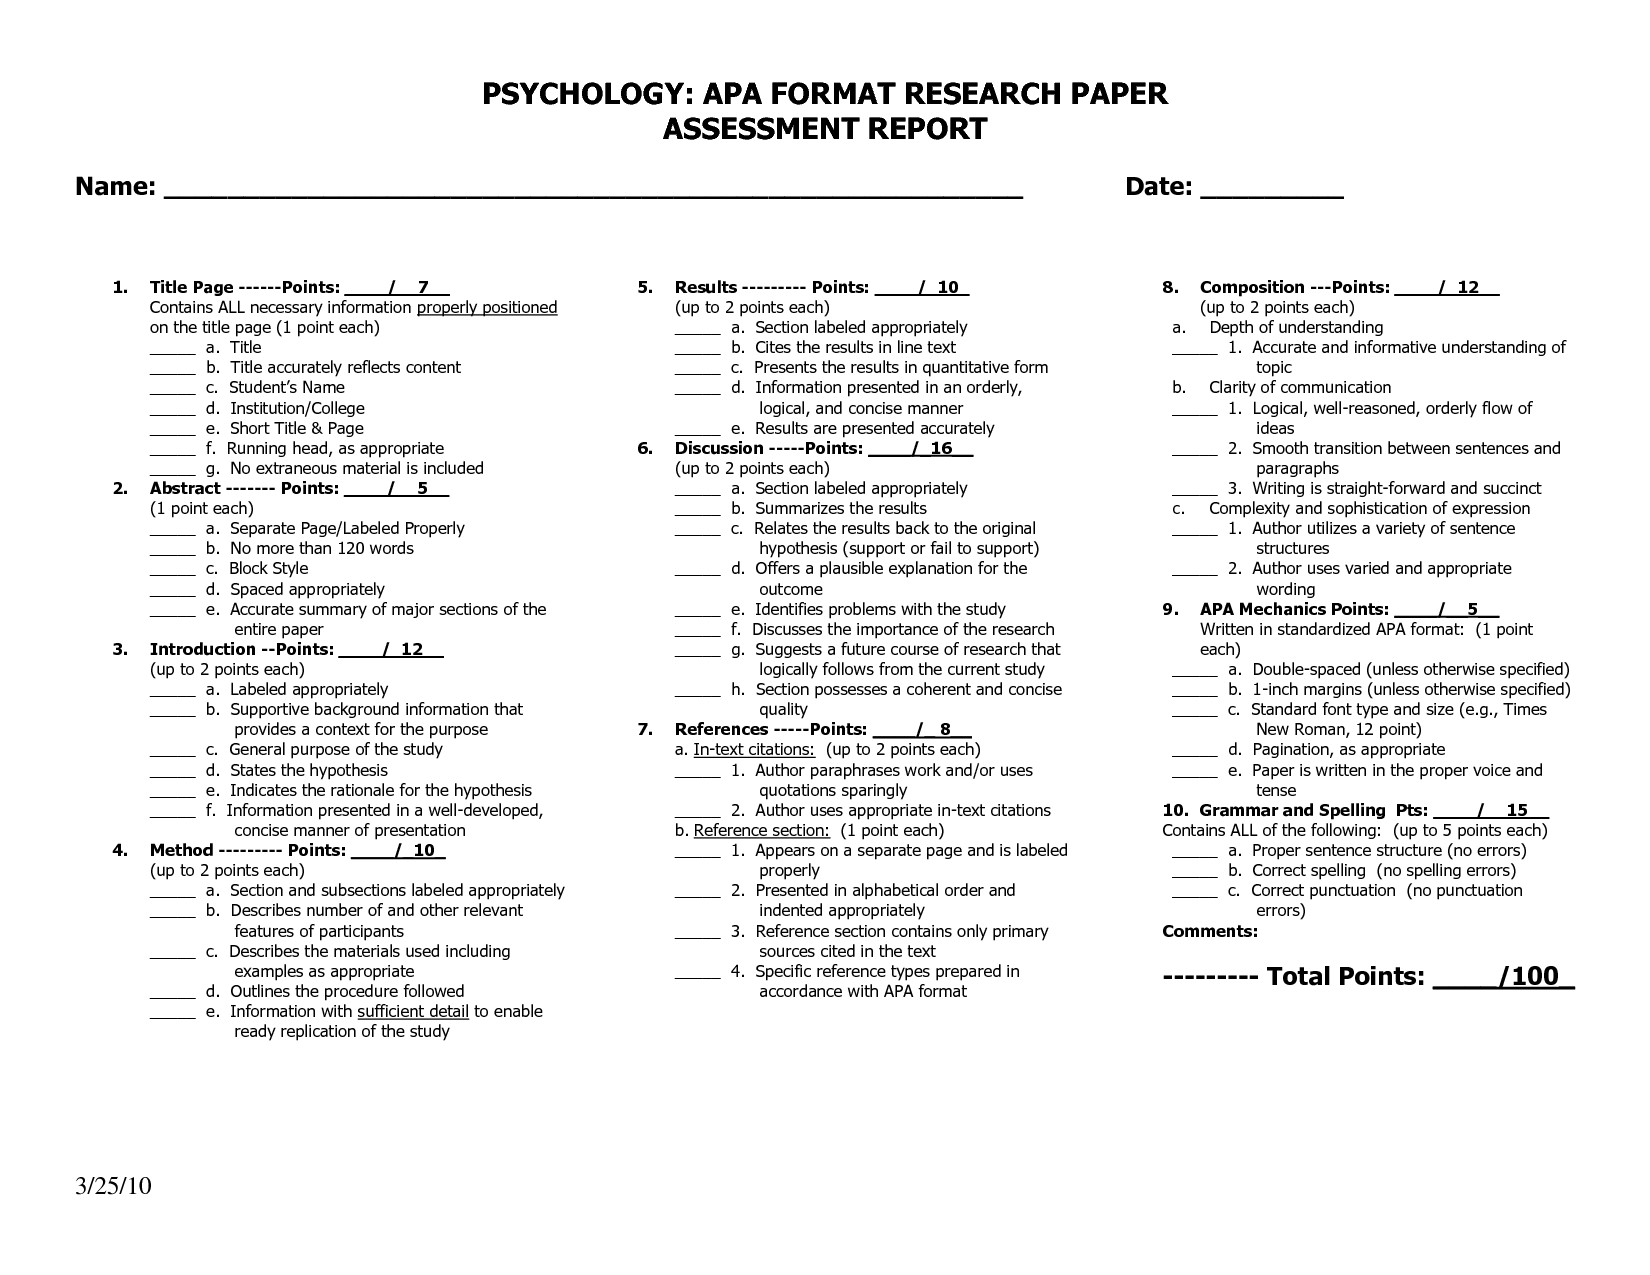 009 Apa Format For Psychology Research Paper How To Write Magnificent An Full